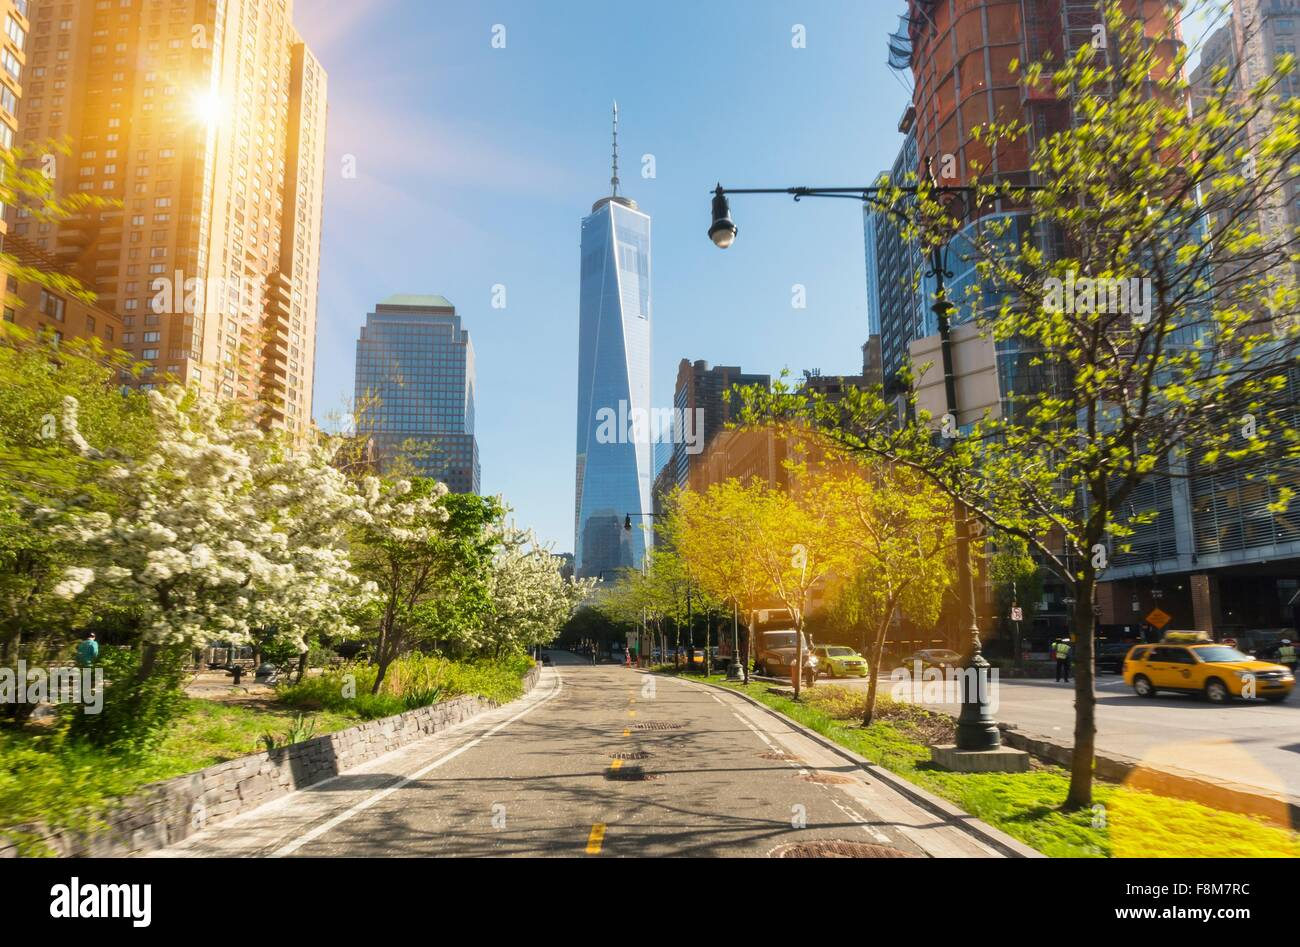 Manhattan financial district cycle path and One World Trade Center, New York, USA - Stock Image